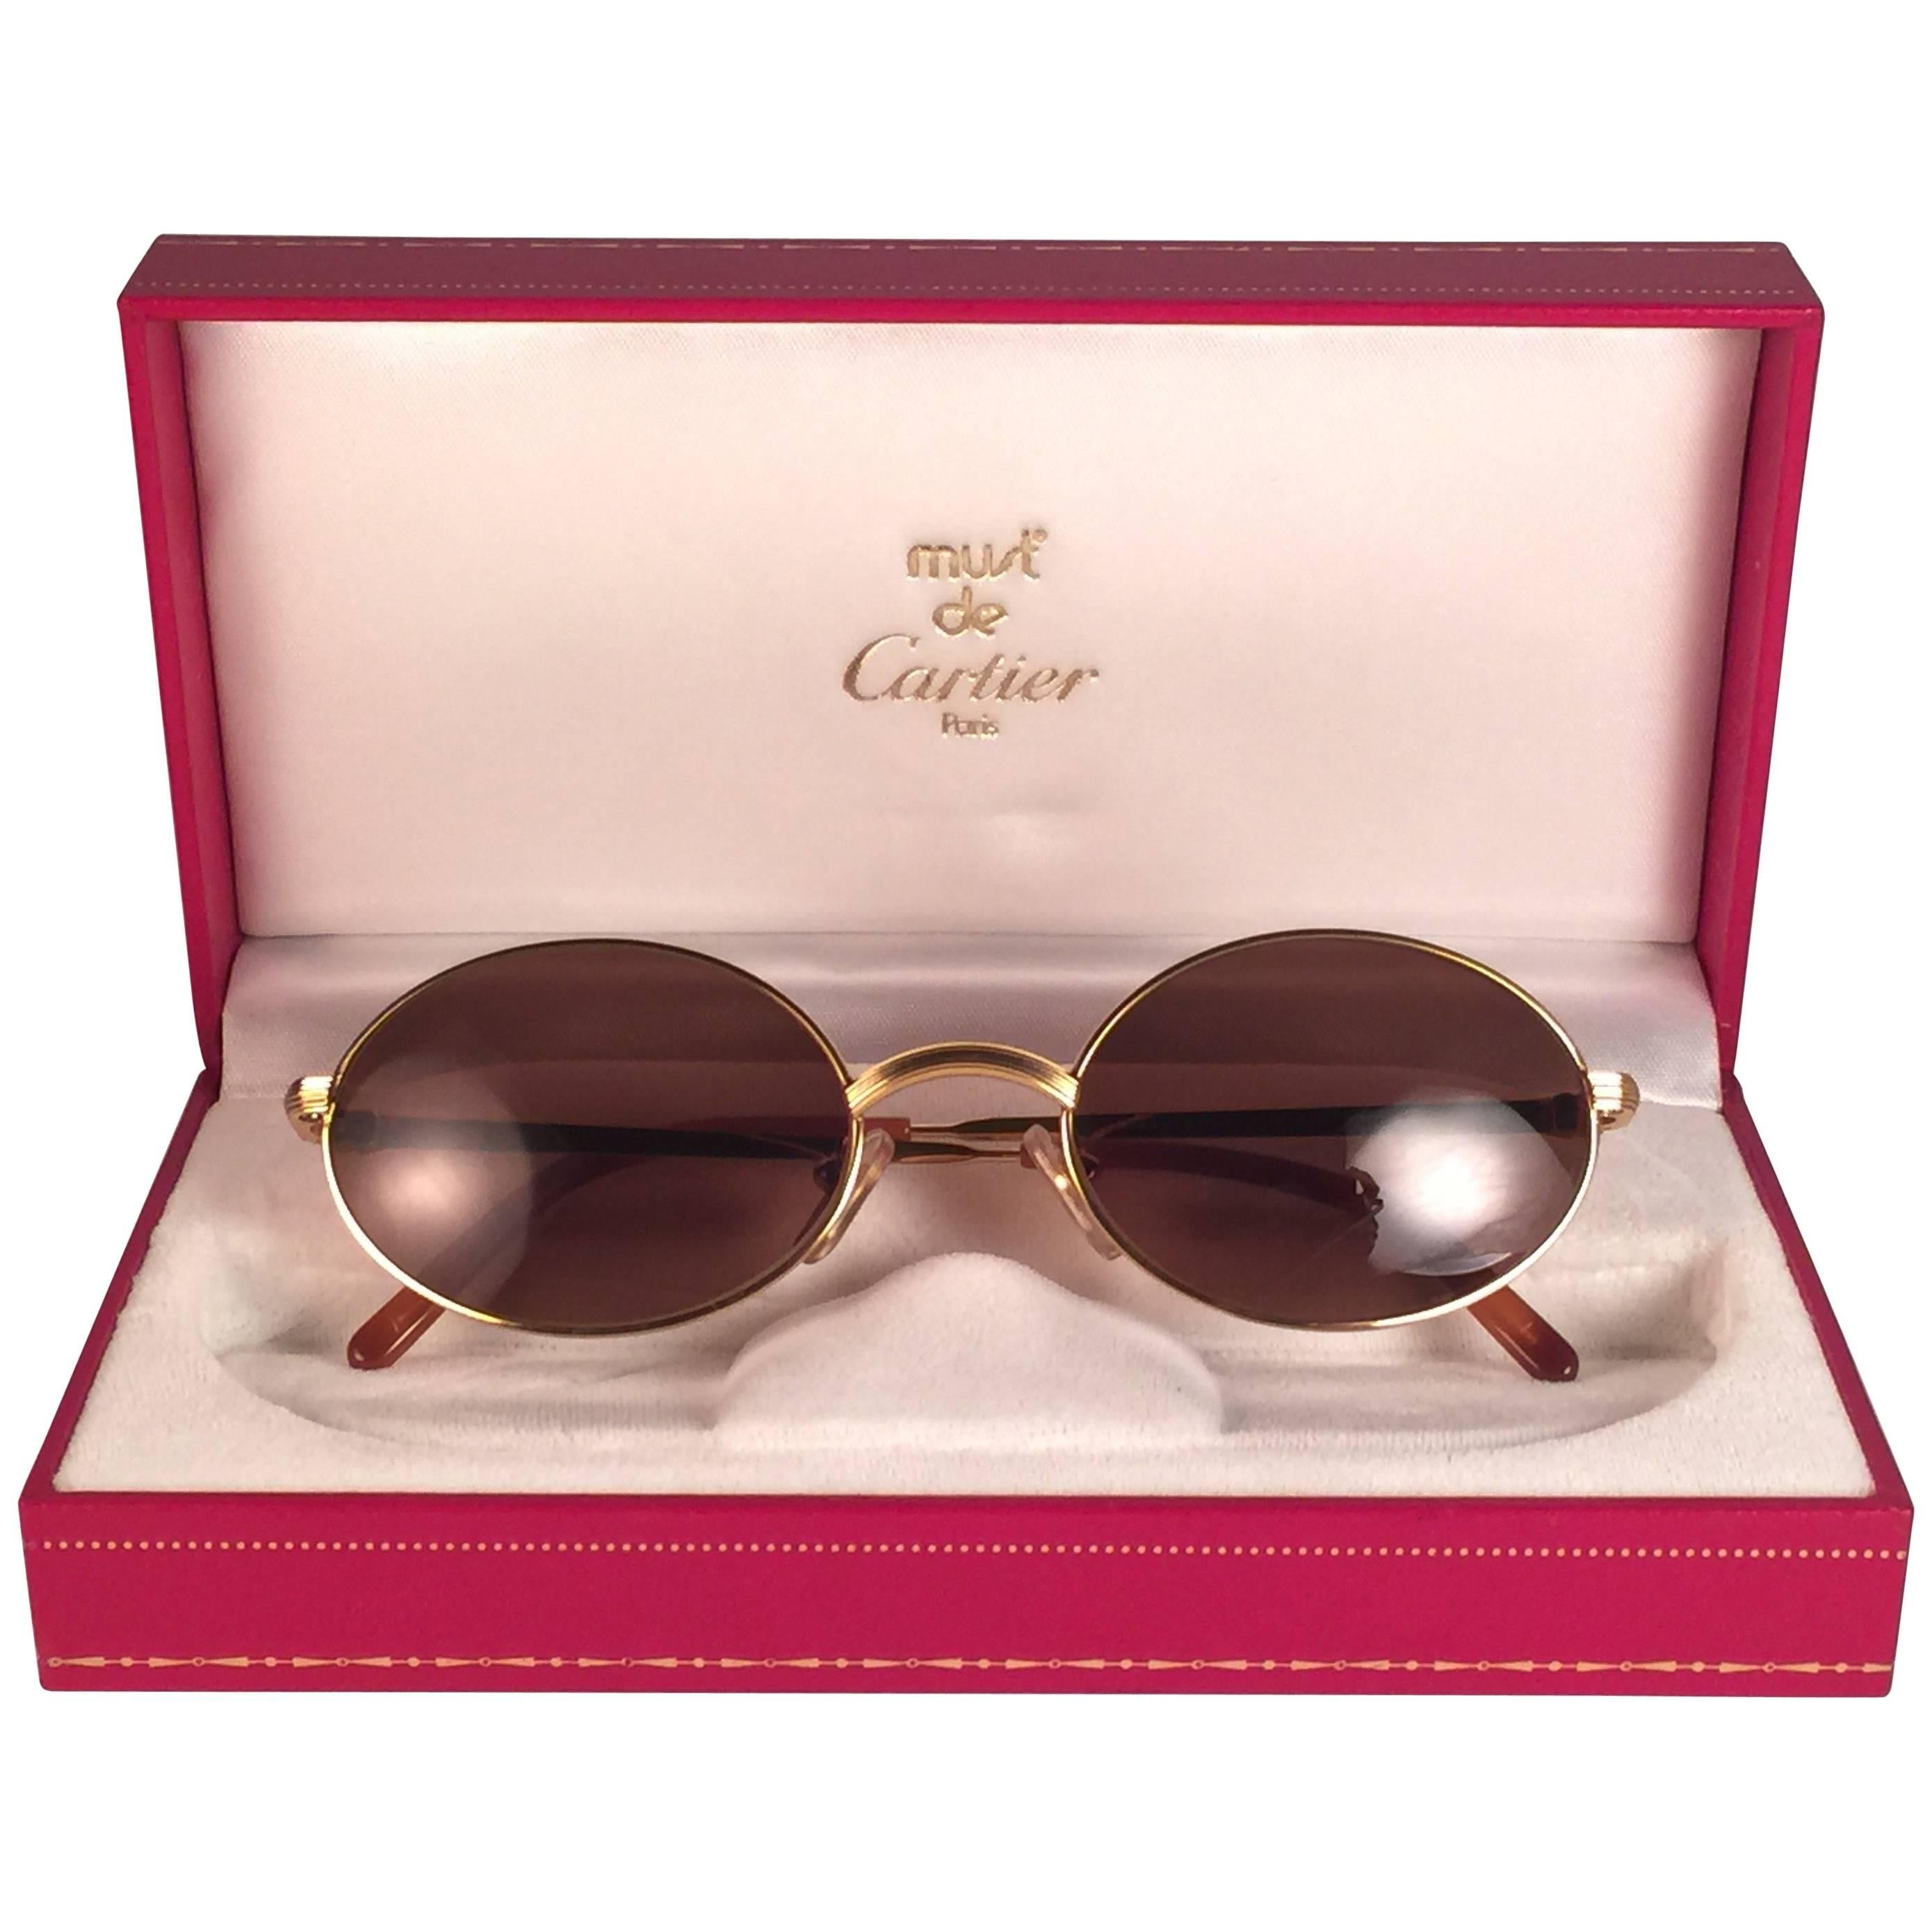 78f1aea1783f New Vintage Cartier Scala 45mm Gold Rimless Brown Lens Case France  Sunglasses For Sale at 1stdibs